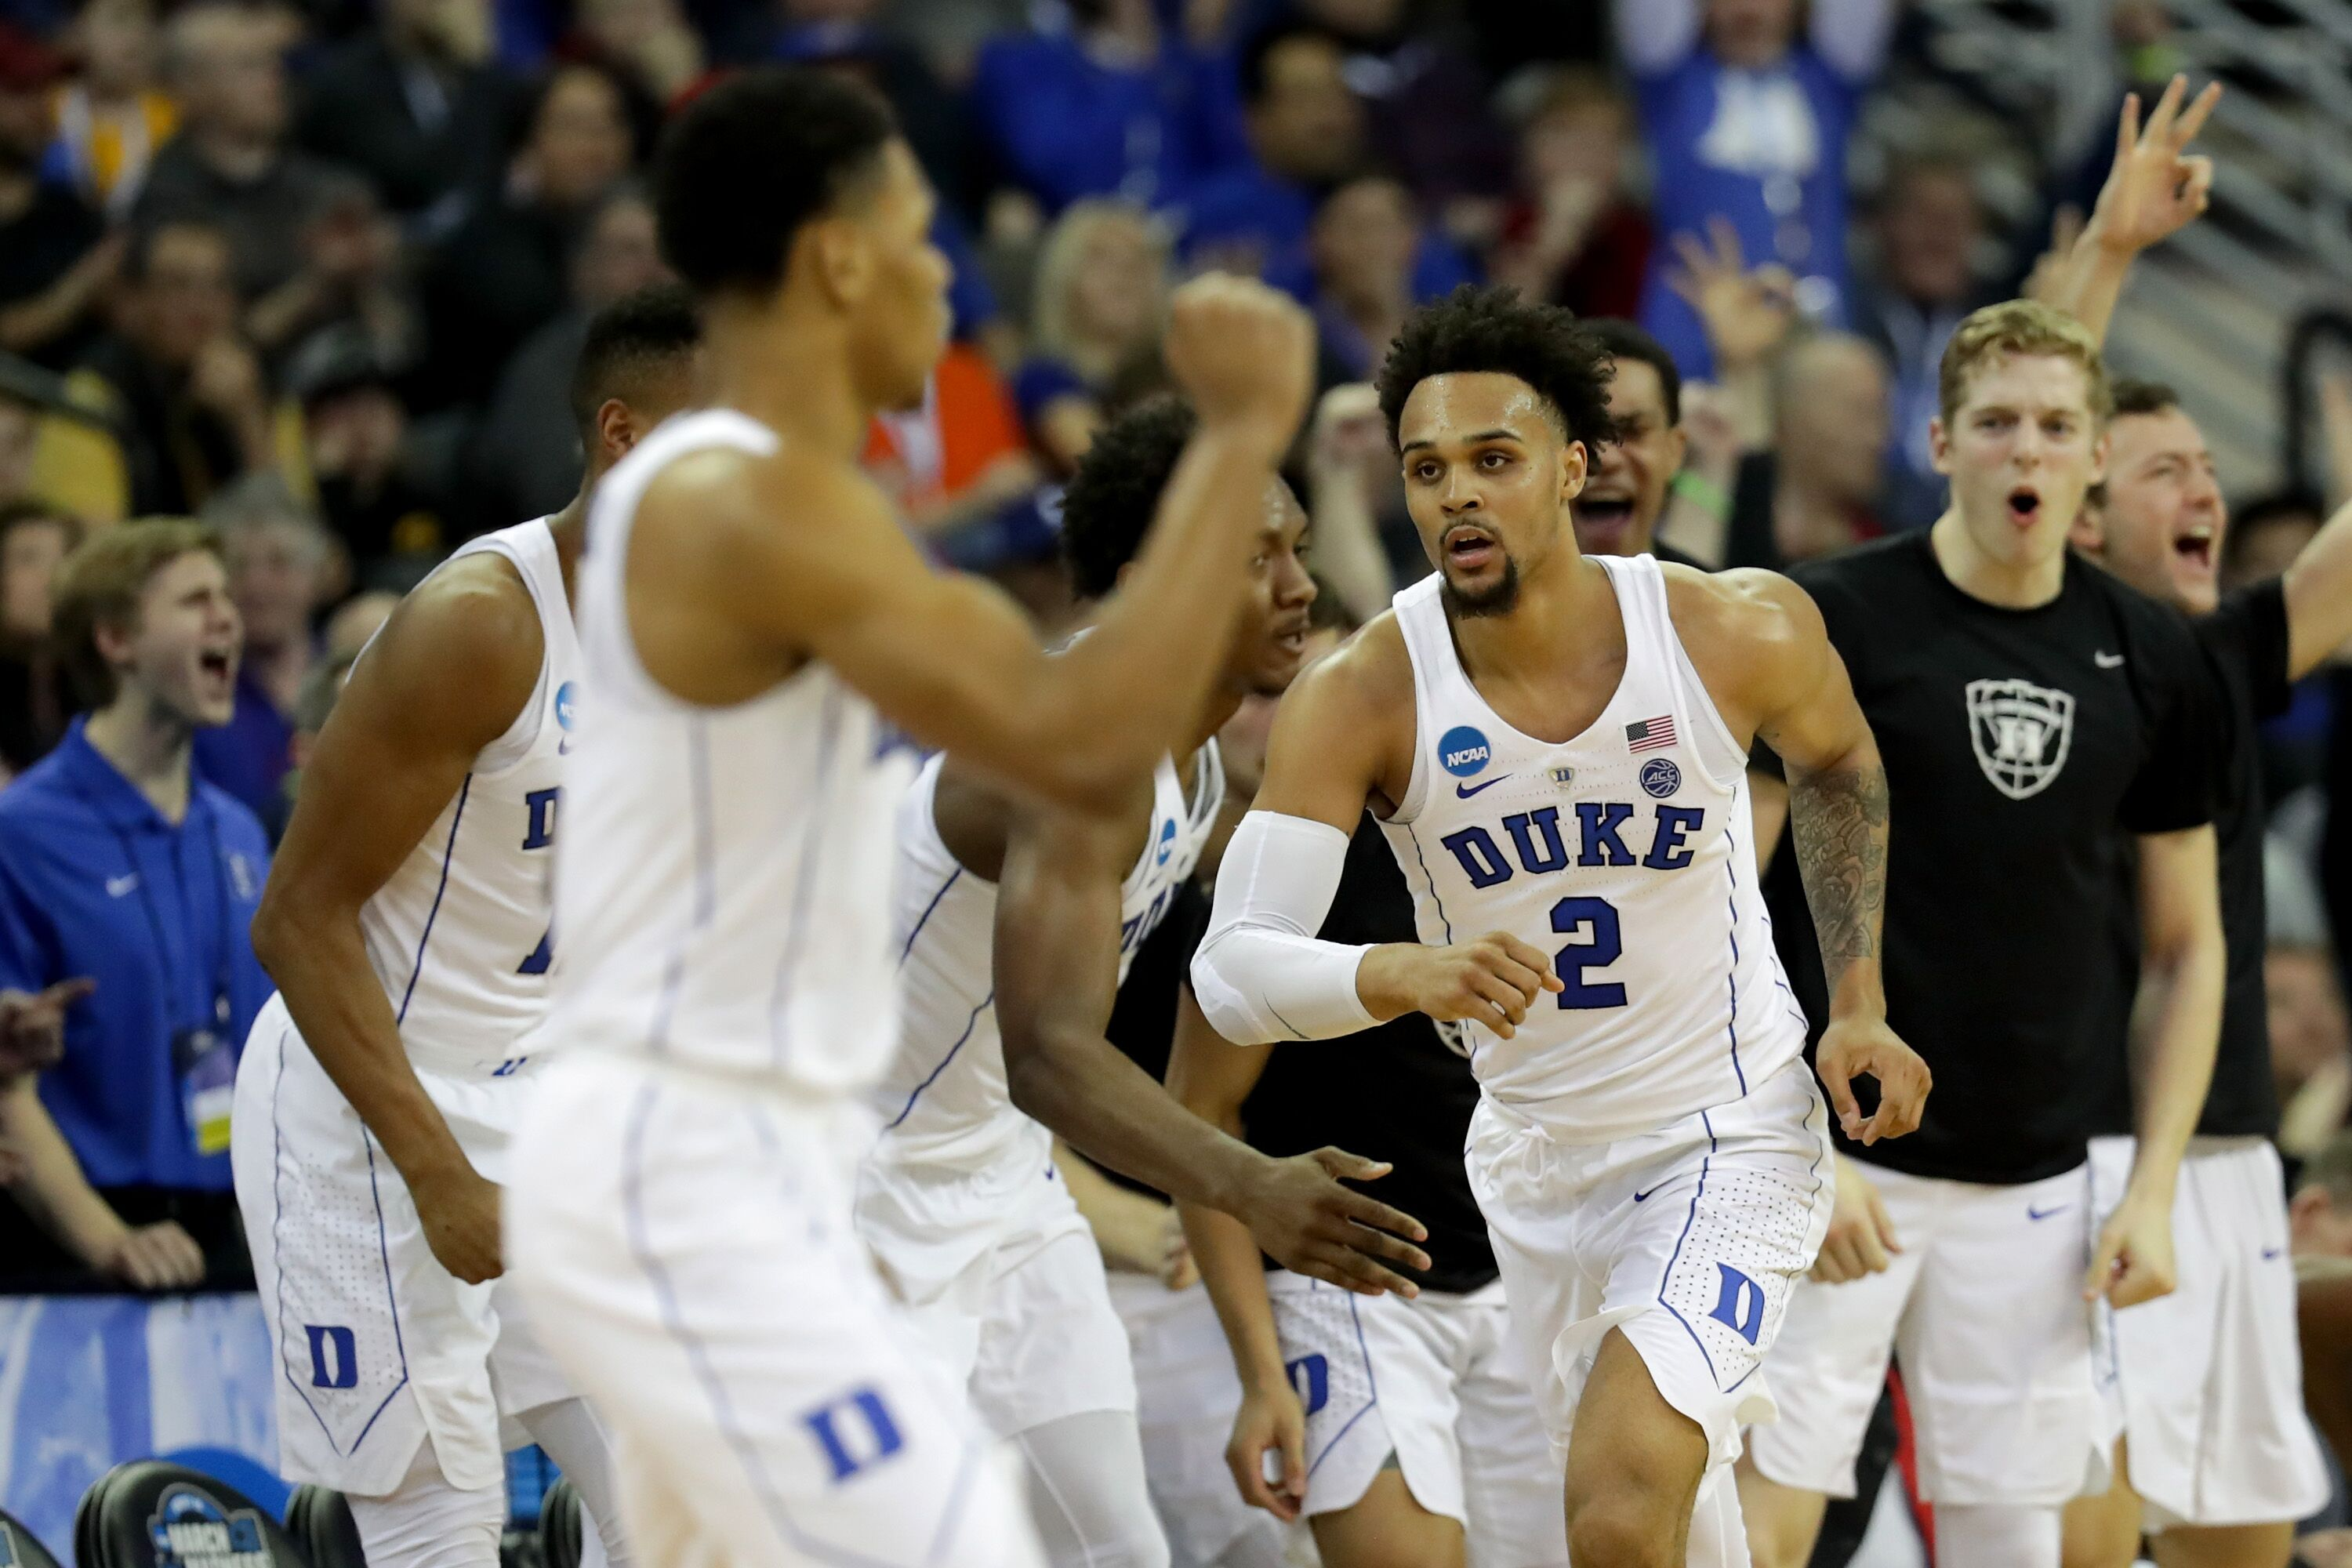 Duke Basketball: Turnovers Lead To Sweet 16 Victory For